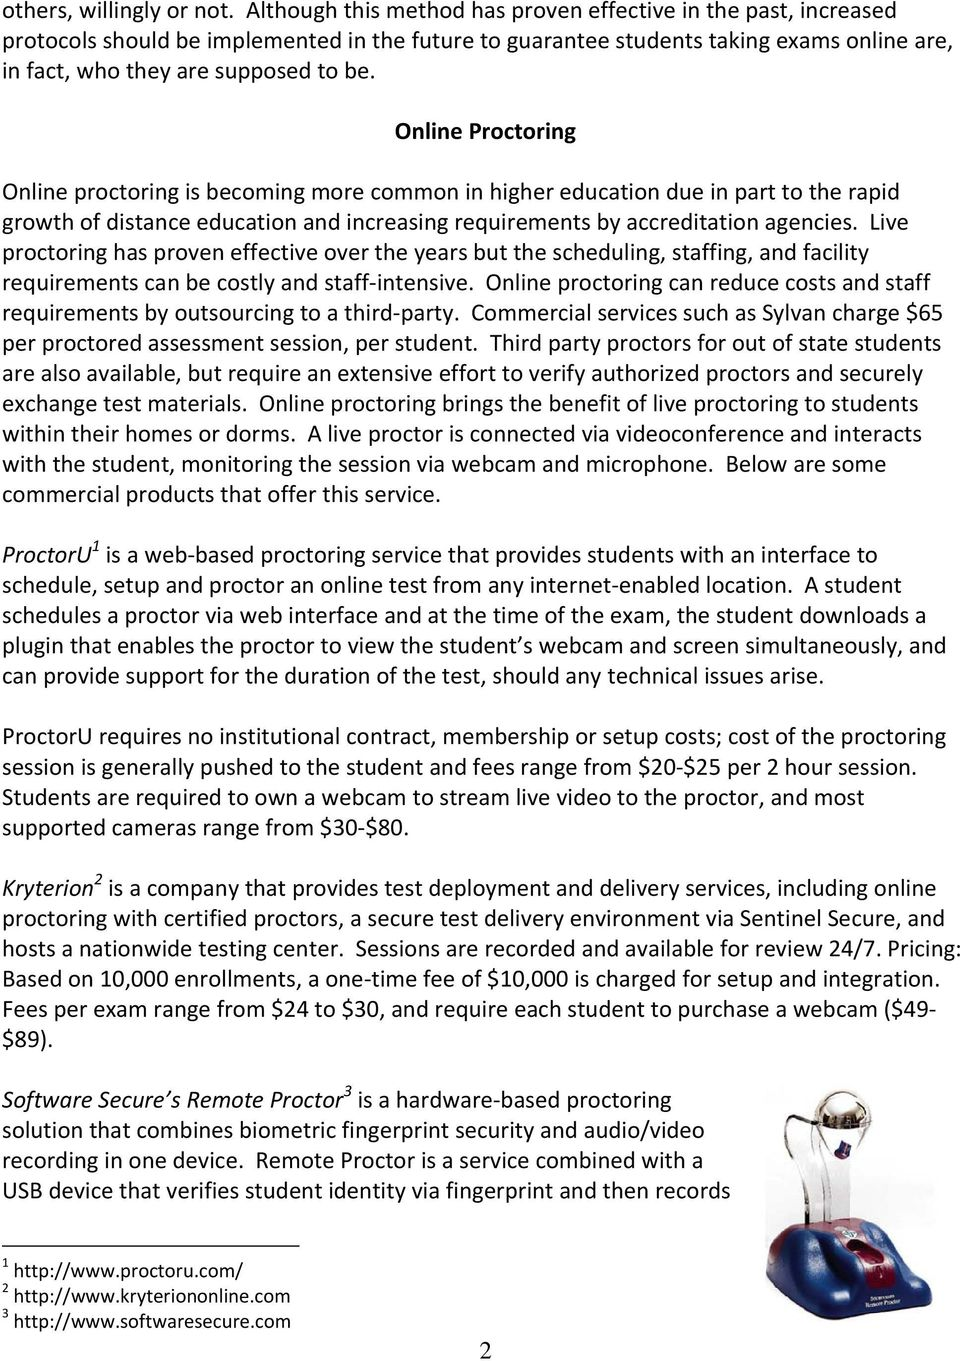 Secure Testing Options for the University - PDF